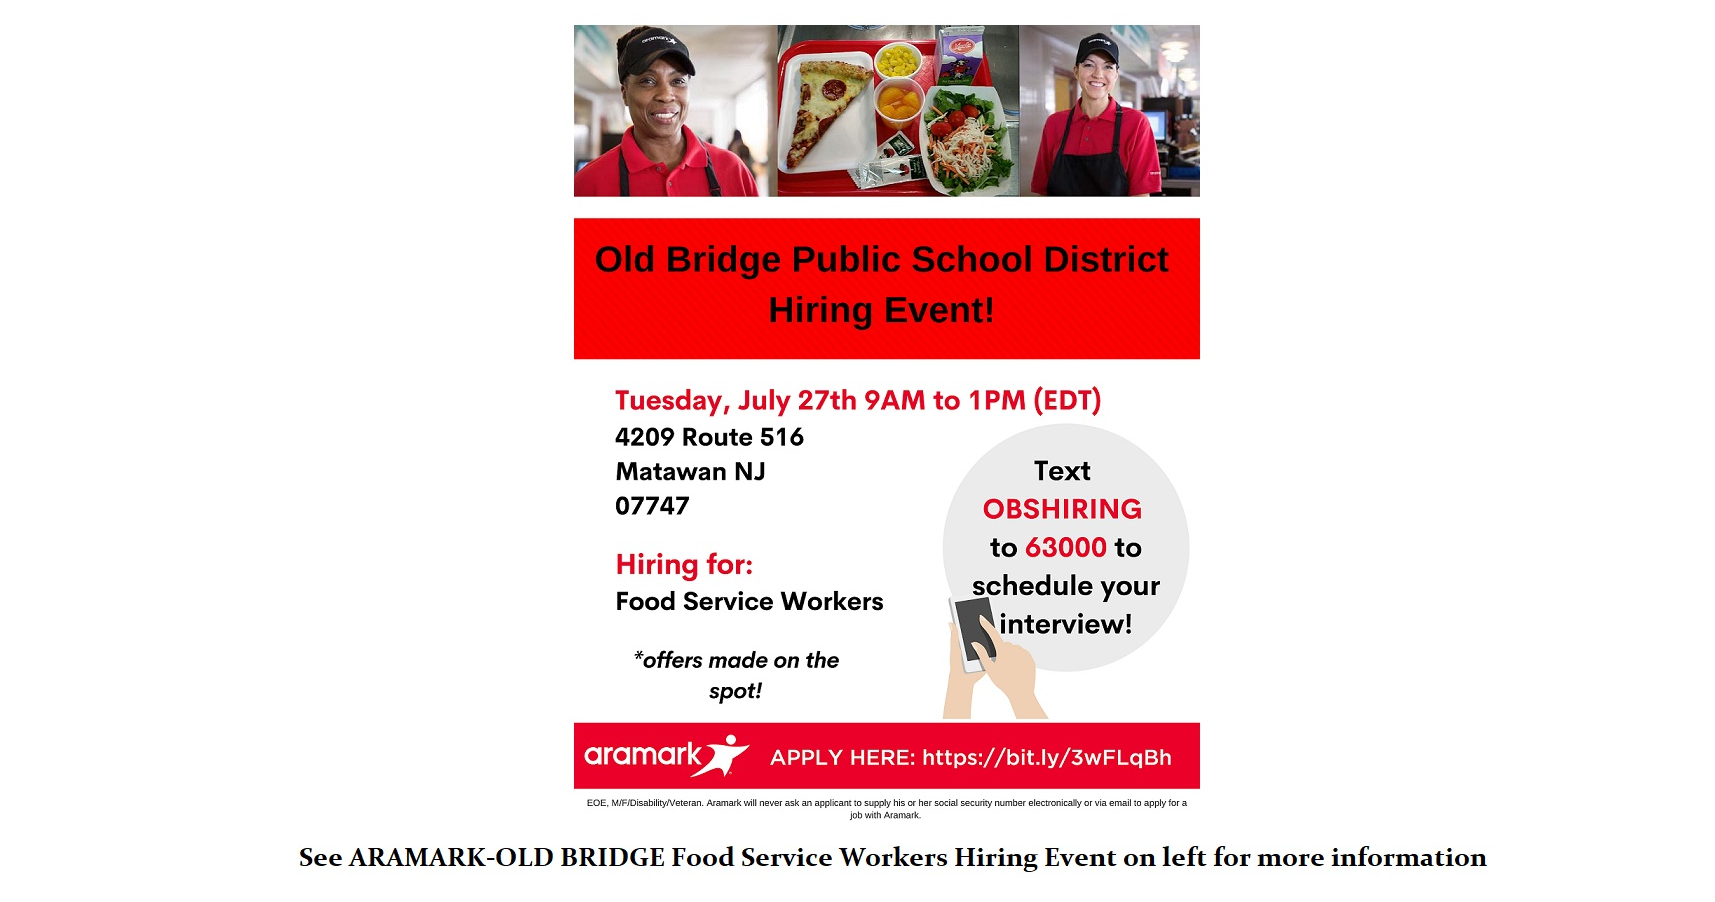 food service workers hiring event